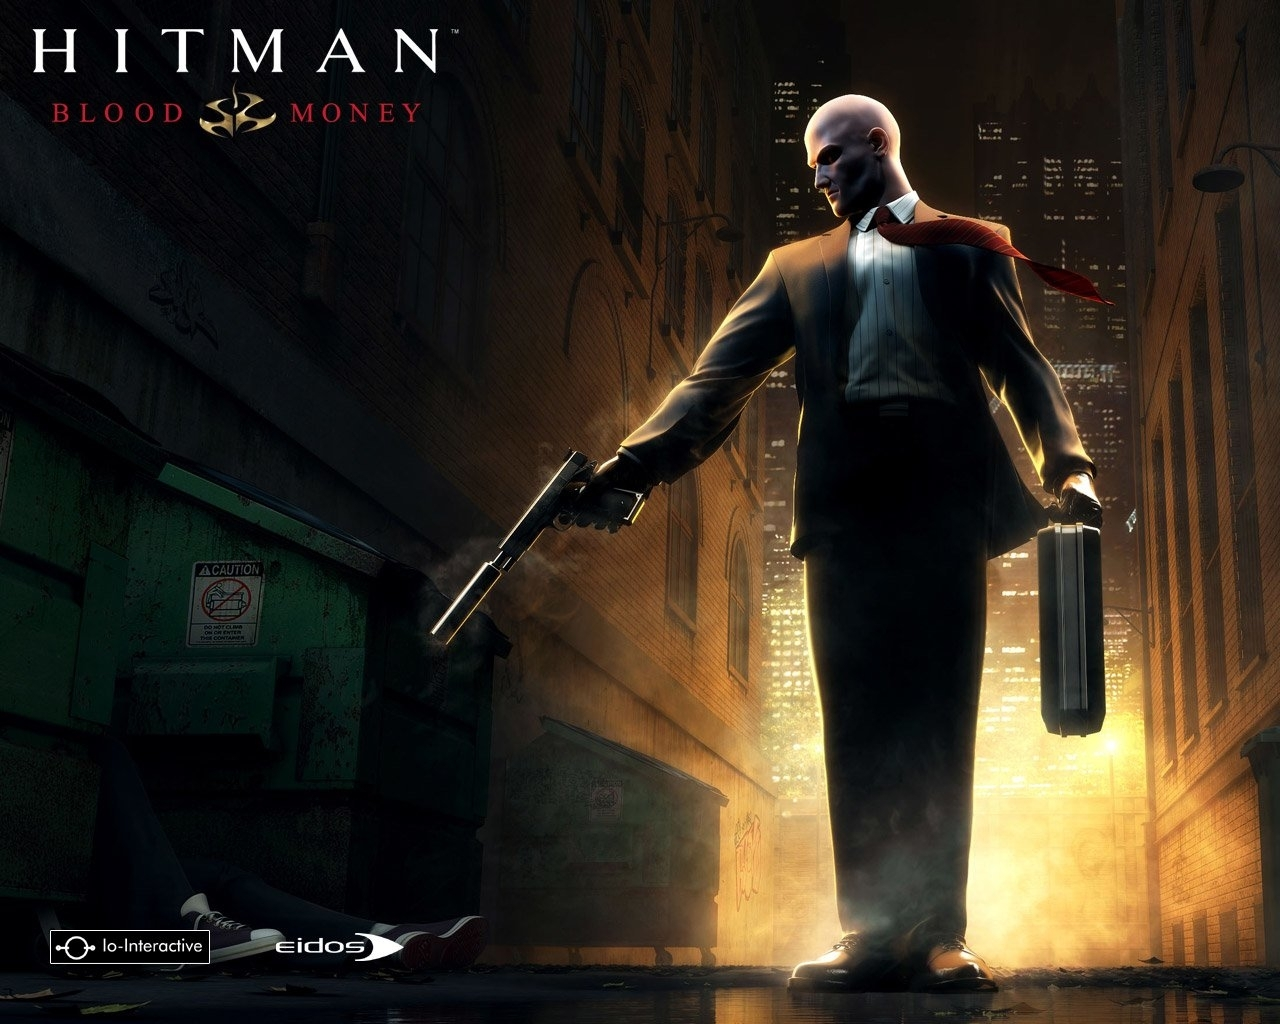 7 hitman: blood money hd wallpapers | background images - wallpaper